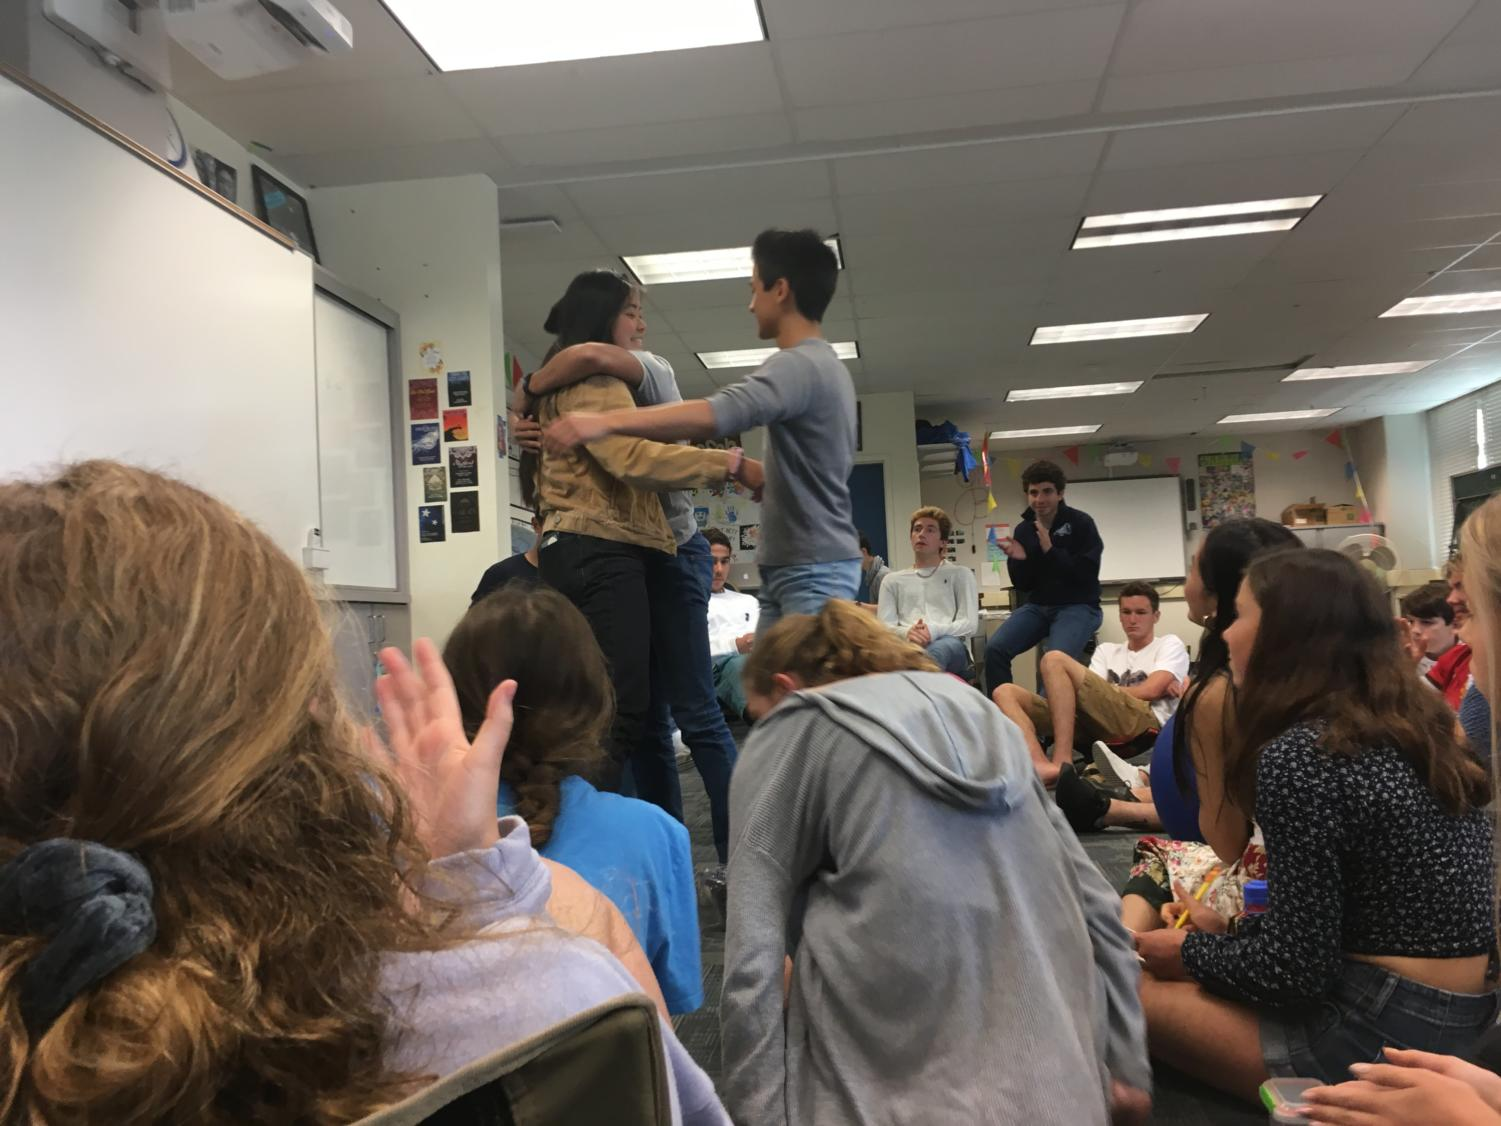 ASB+students+embrace+each+other+during+speeches+for+%22True+Scot%22+pins.